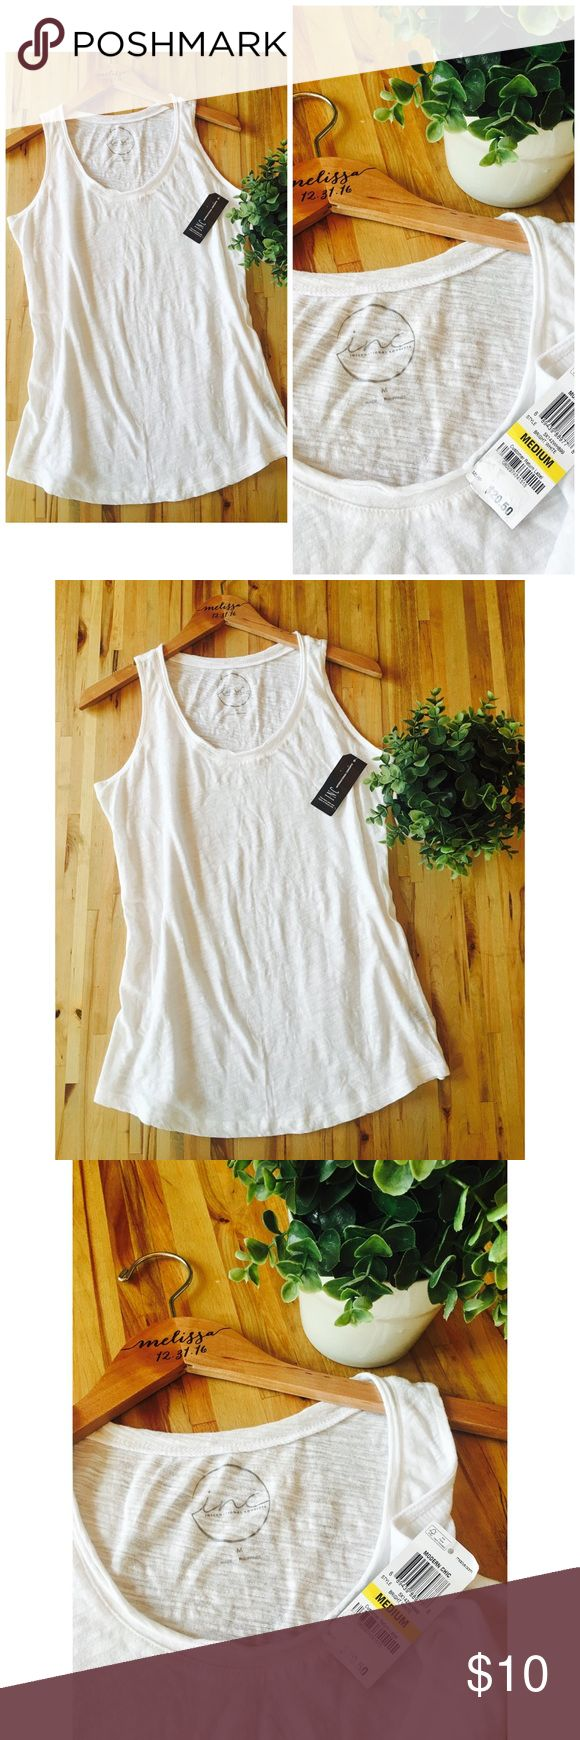 Macy's INC Basic Tank!✨ Super soft!!! Lightweight, basic white tank by Macy's INC! A summer must have! INC International Concepts Tops Tank Tops